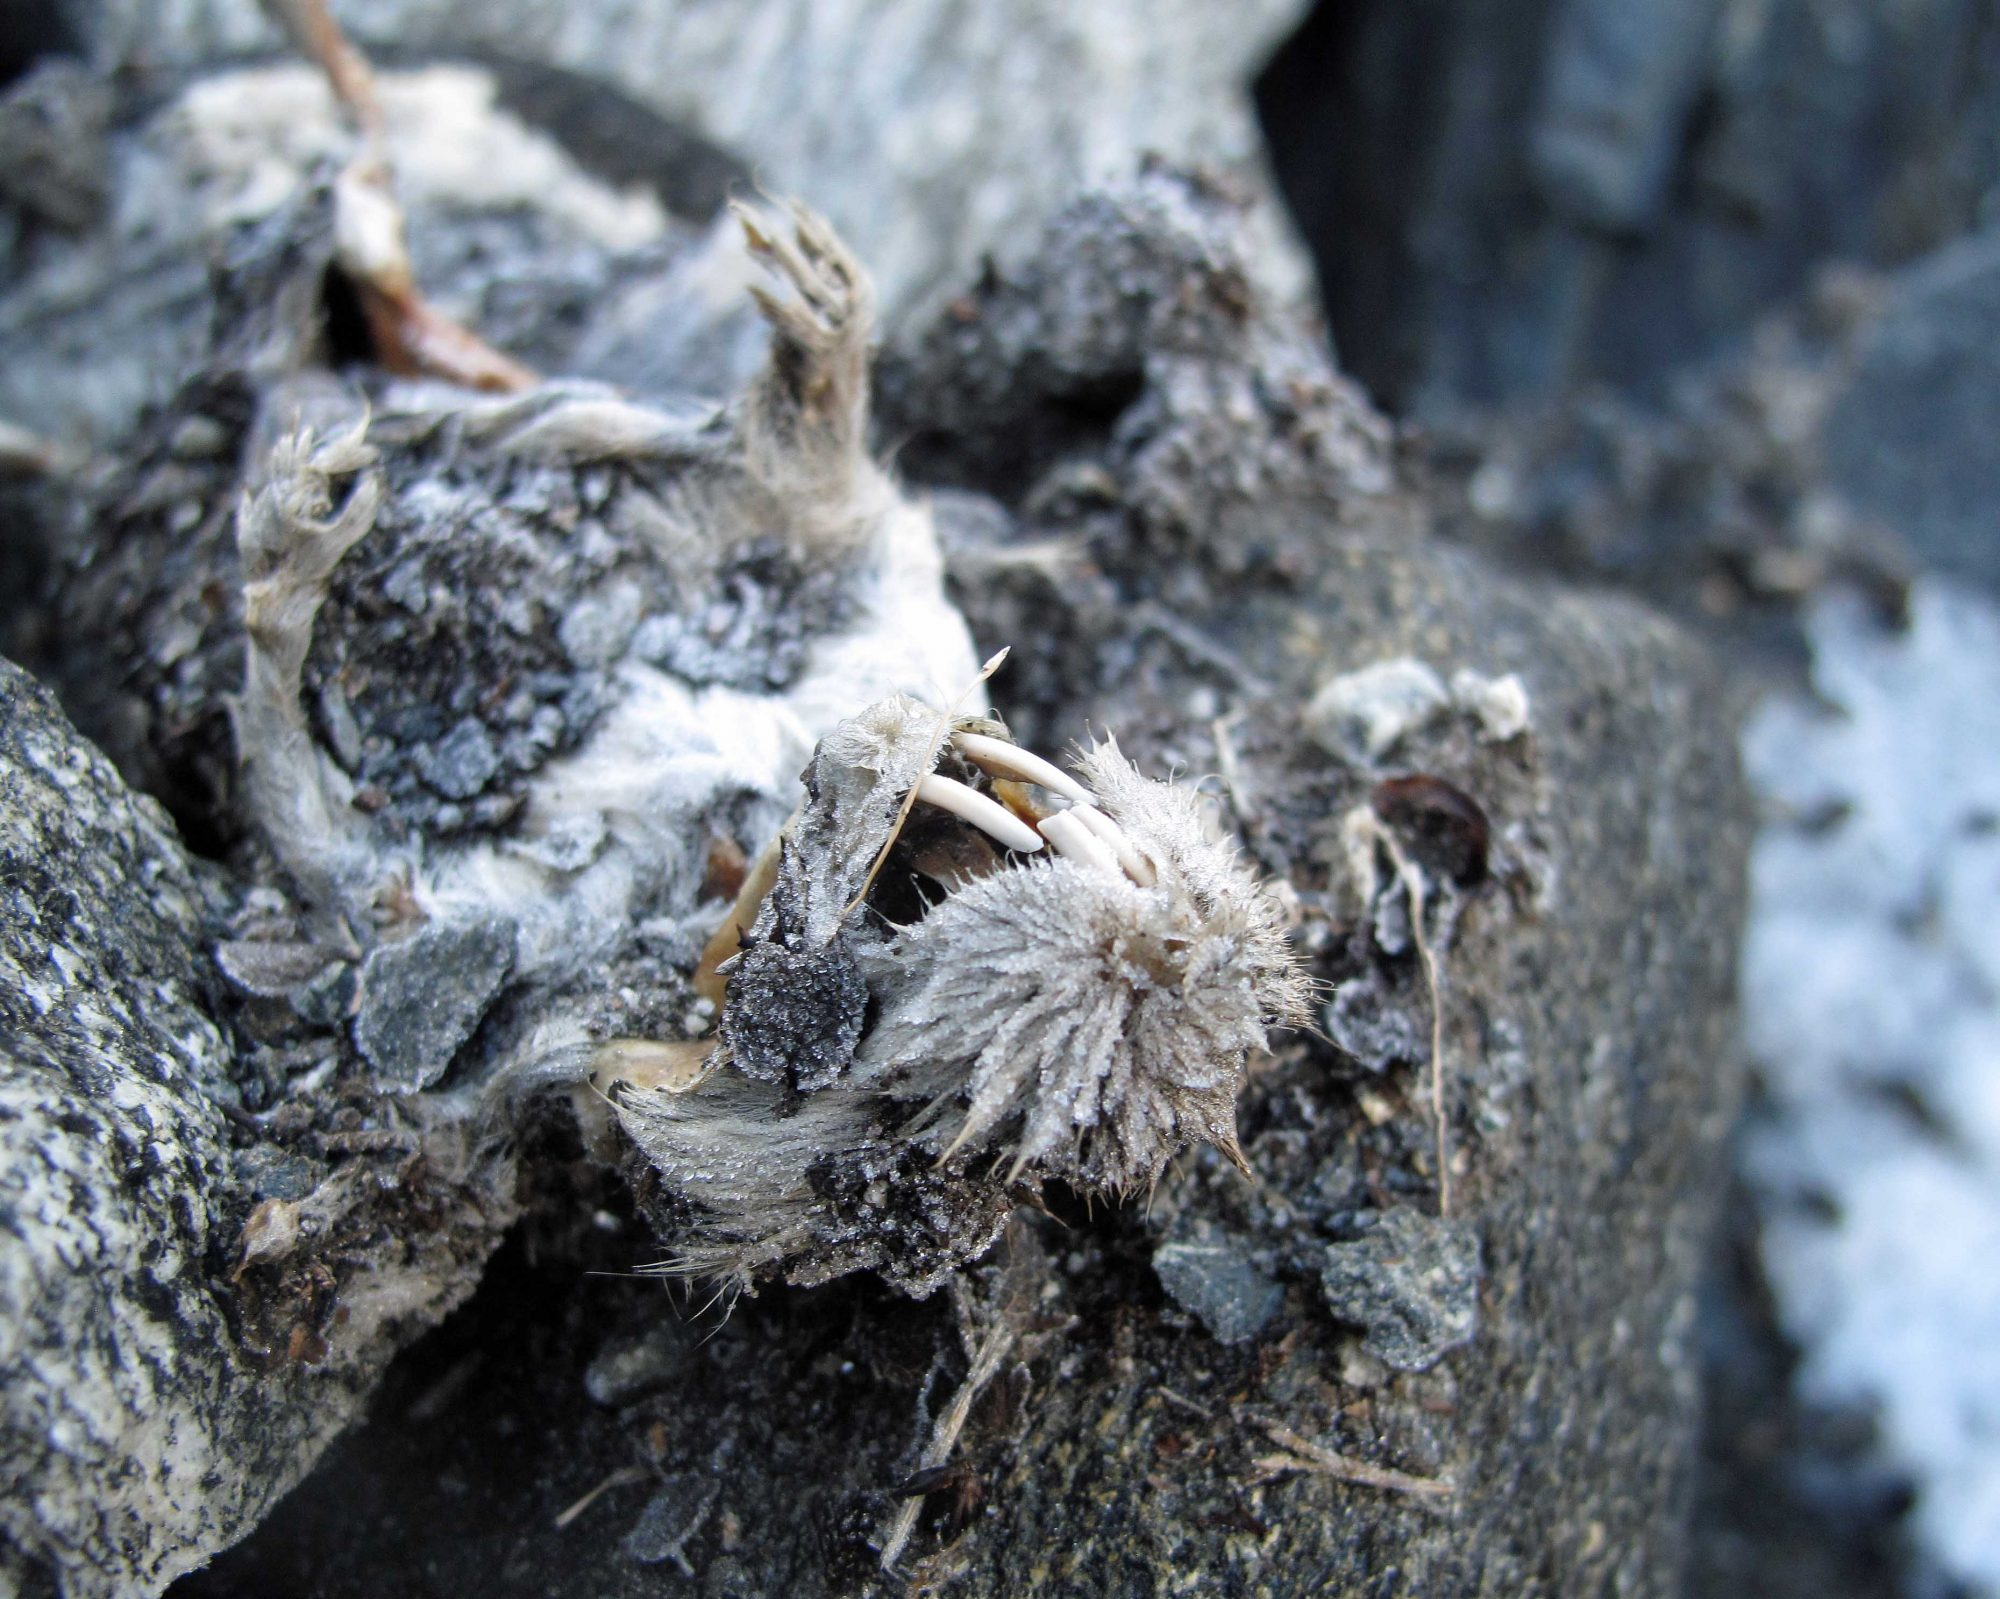 A recently melted out lemming mummy from a Norwegian ice patch (source: Tord Bretten/ SNO).